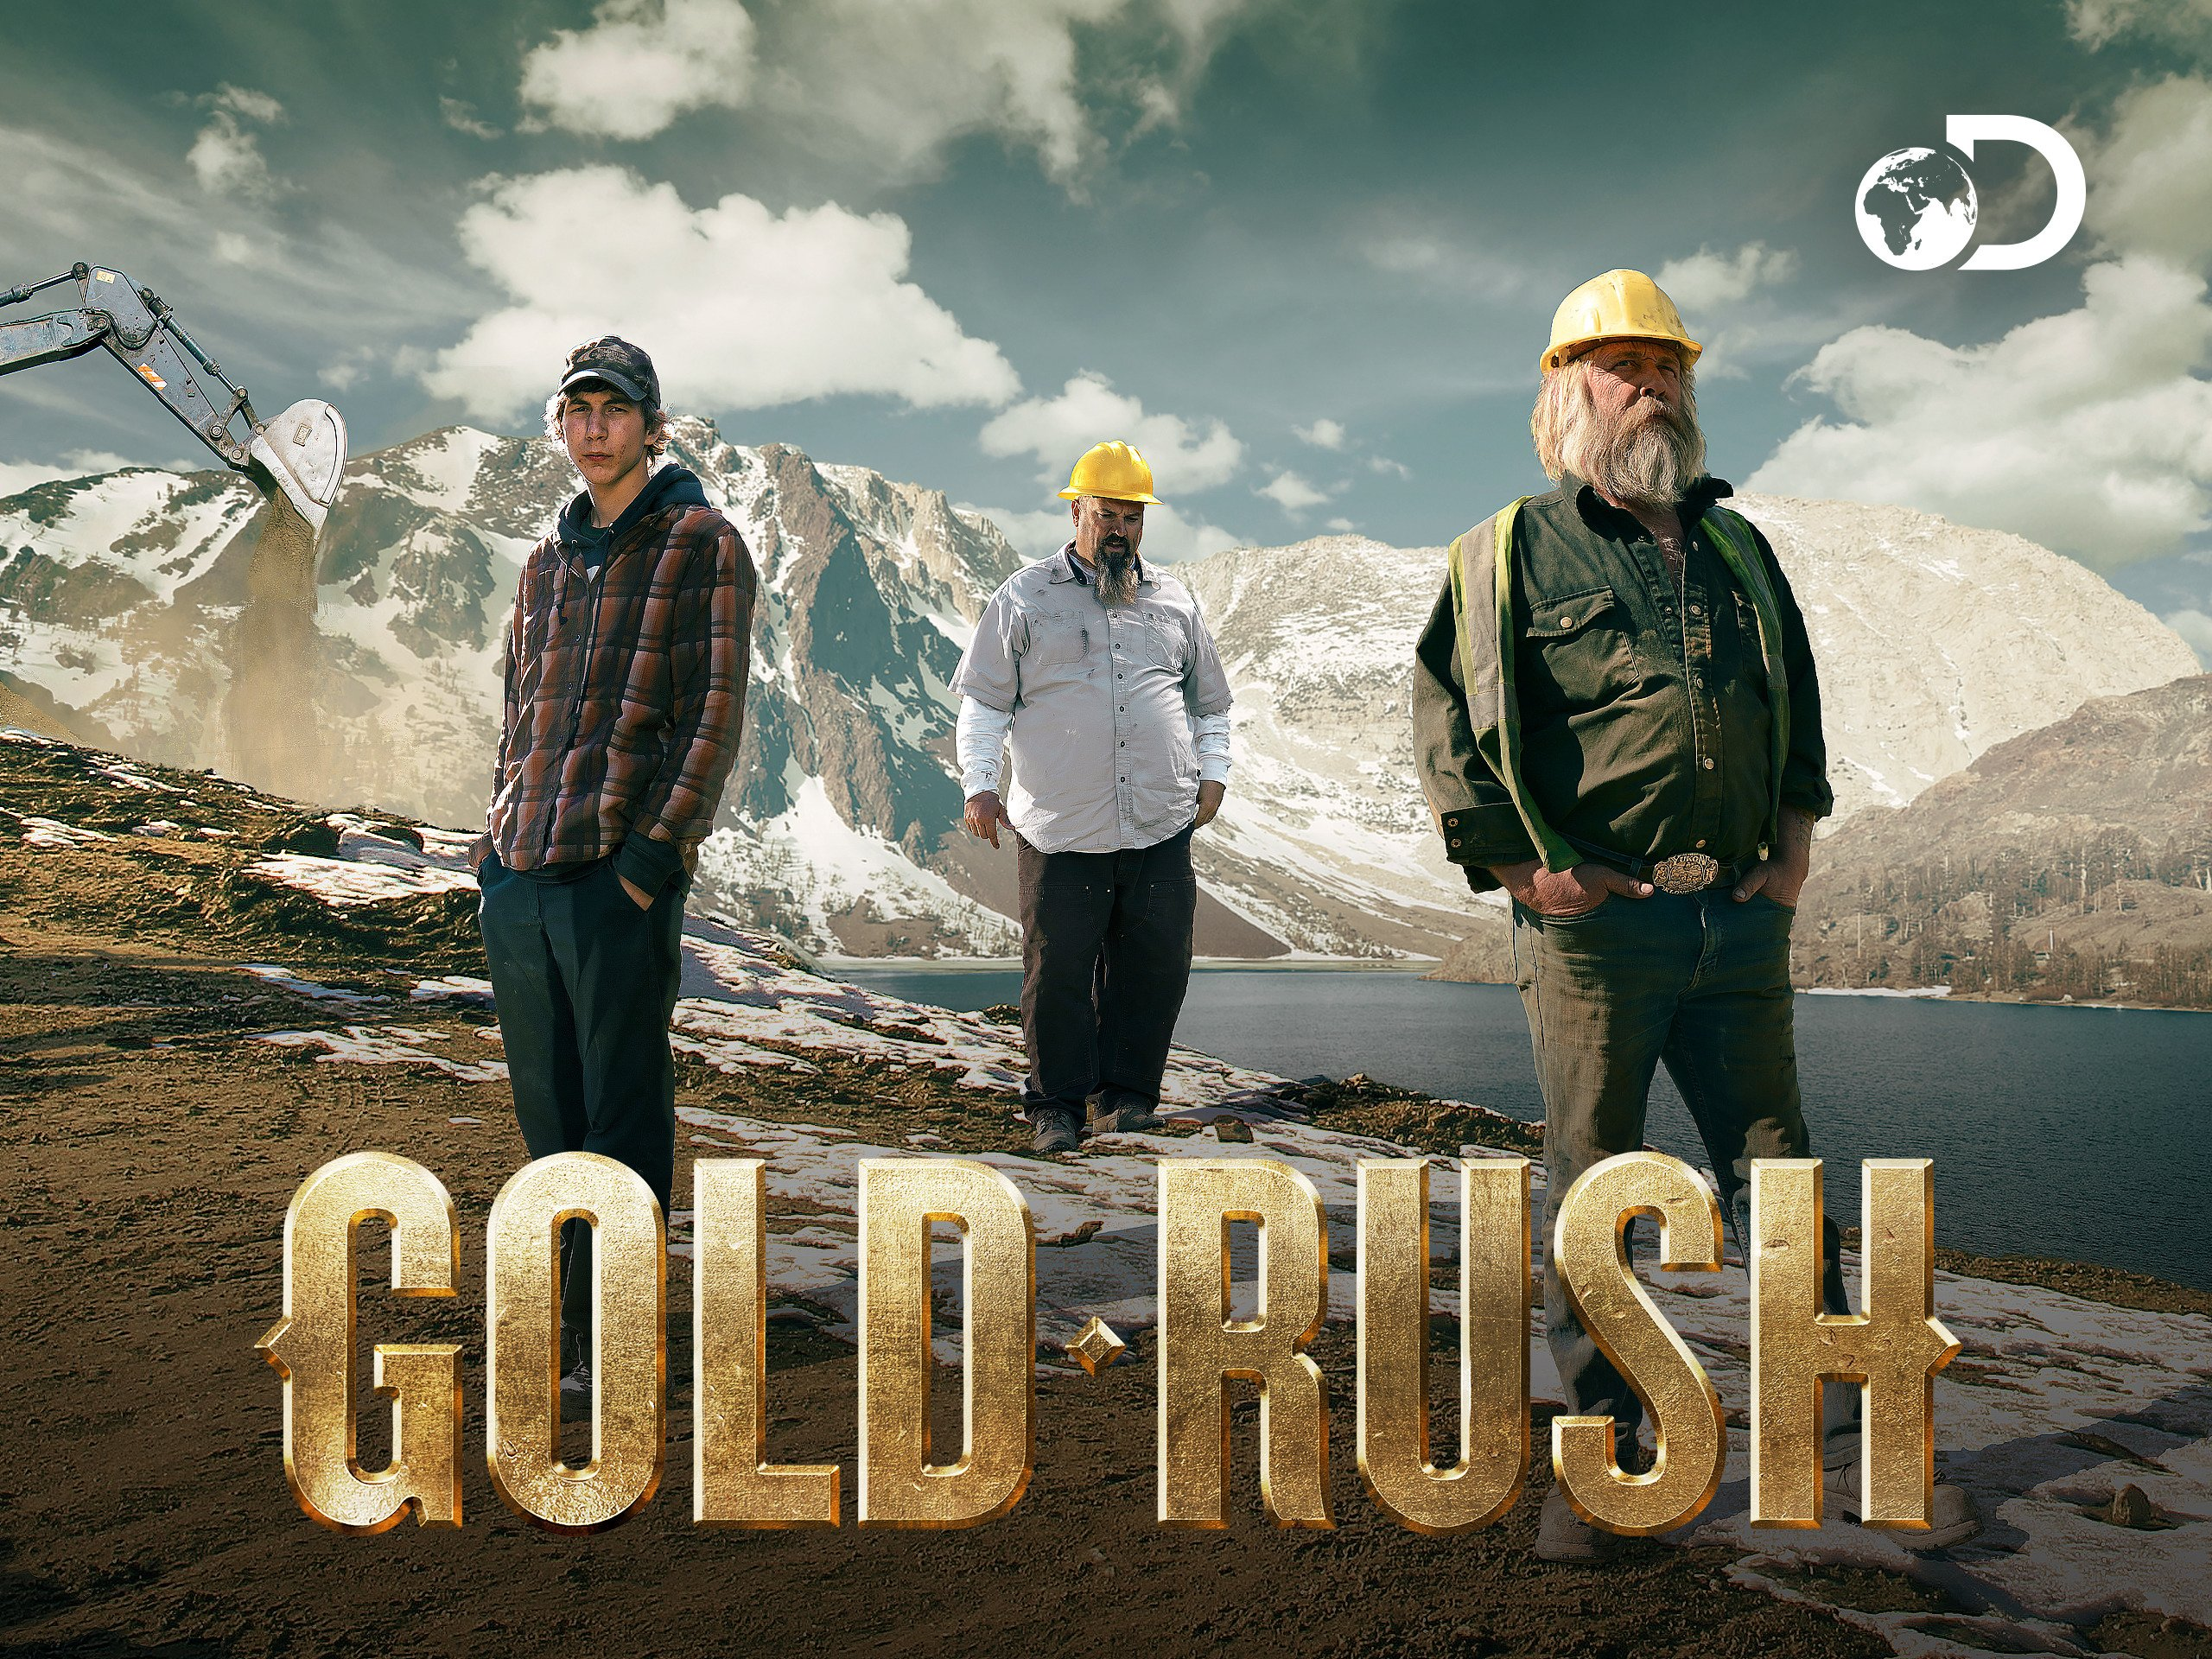 television series about boy searching for father during goldrush